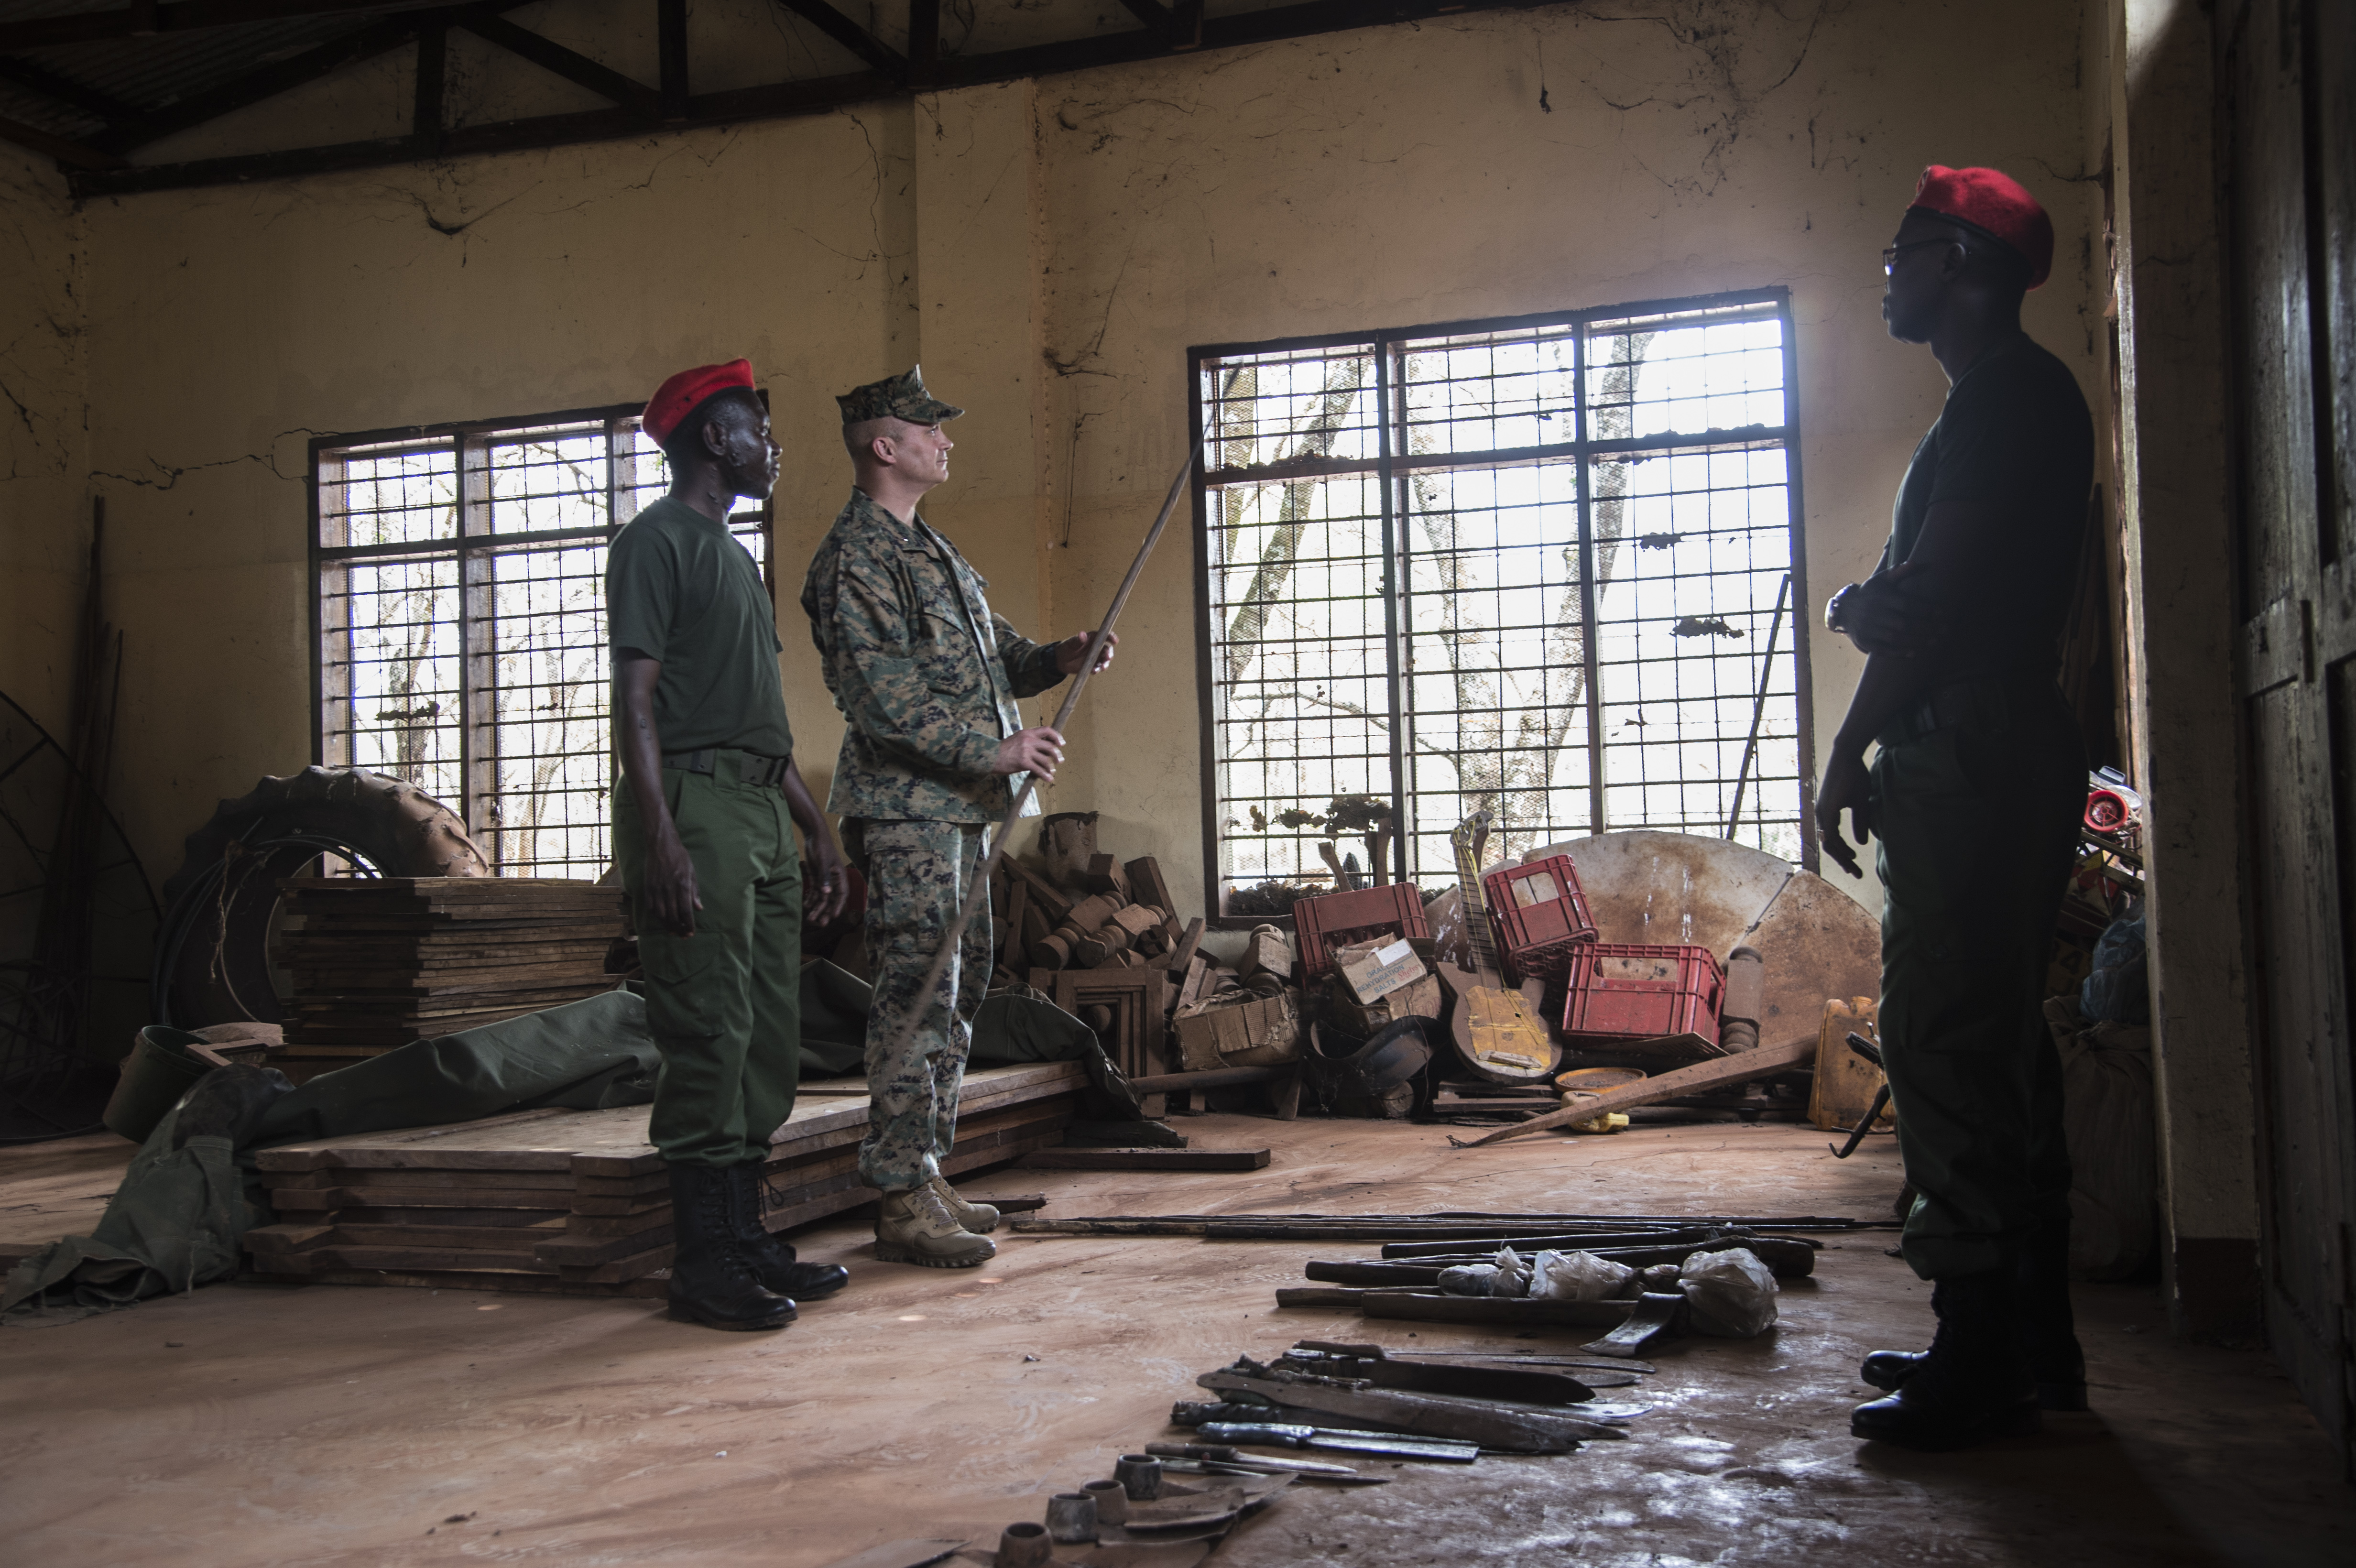 U.S. Marine Corps Brig. Gen. David Furness, Commanding General of Combined Joint Task Force-Horn of Africa, views items obtained from poachers and others involved in illicit trafficking during a visit with CJTF-HOA civil affairs Soldiers who are conducting counter illicit trafficking training at a game reserve in Tanzania, Sept. 28, 2017. CJTF-HOA seeks to develop the capacity of the Tanzanian Wildlife Authority game wardens to conduct effective patrol operations, information management and civil engagement in order to promote local and regional security and counter transnational illicit trafficking networks.  (U.S. Air National Guard photo by Tech. Sgt. Joe Harwood/Released)